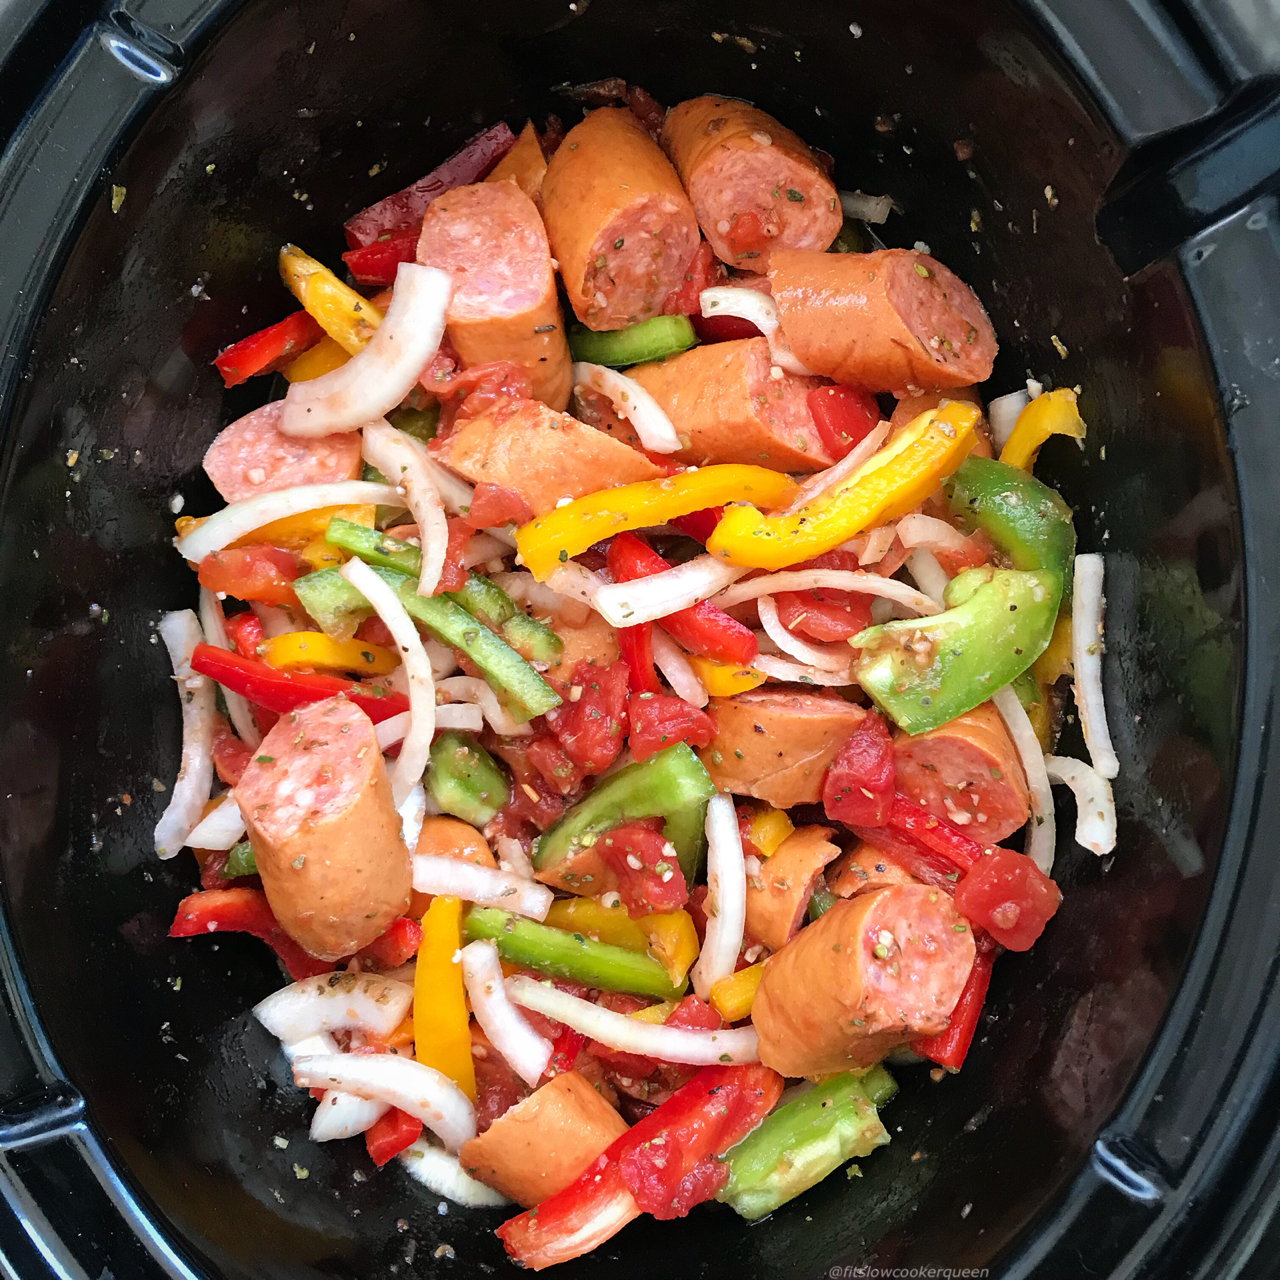 Grab your favorite sausages and slow cook them with bell peppers, onions, and tomatoes in this aromatic and flavorful paleo, whole30, and low-carb recipe.